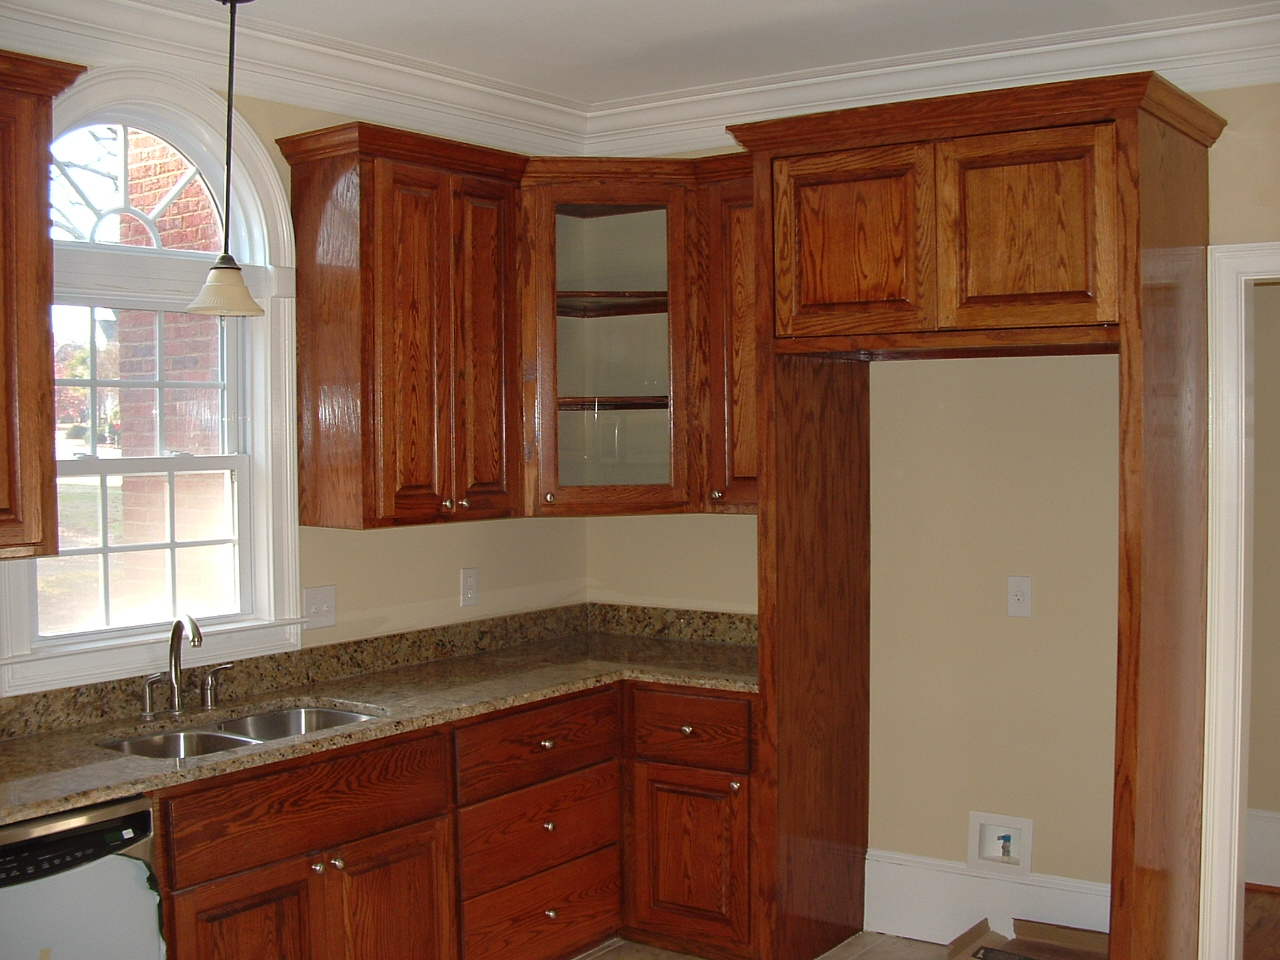 Kitchen cabinets storage Photo - 8